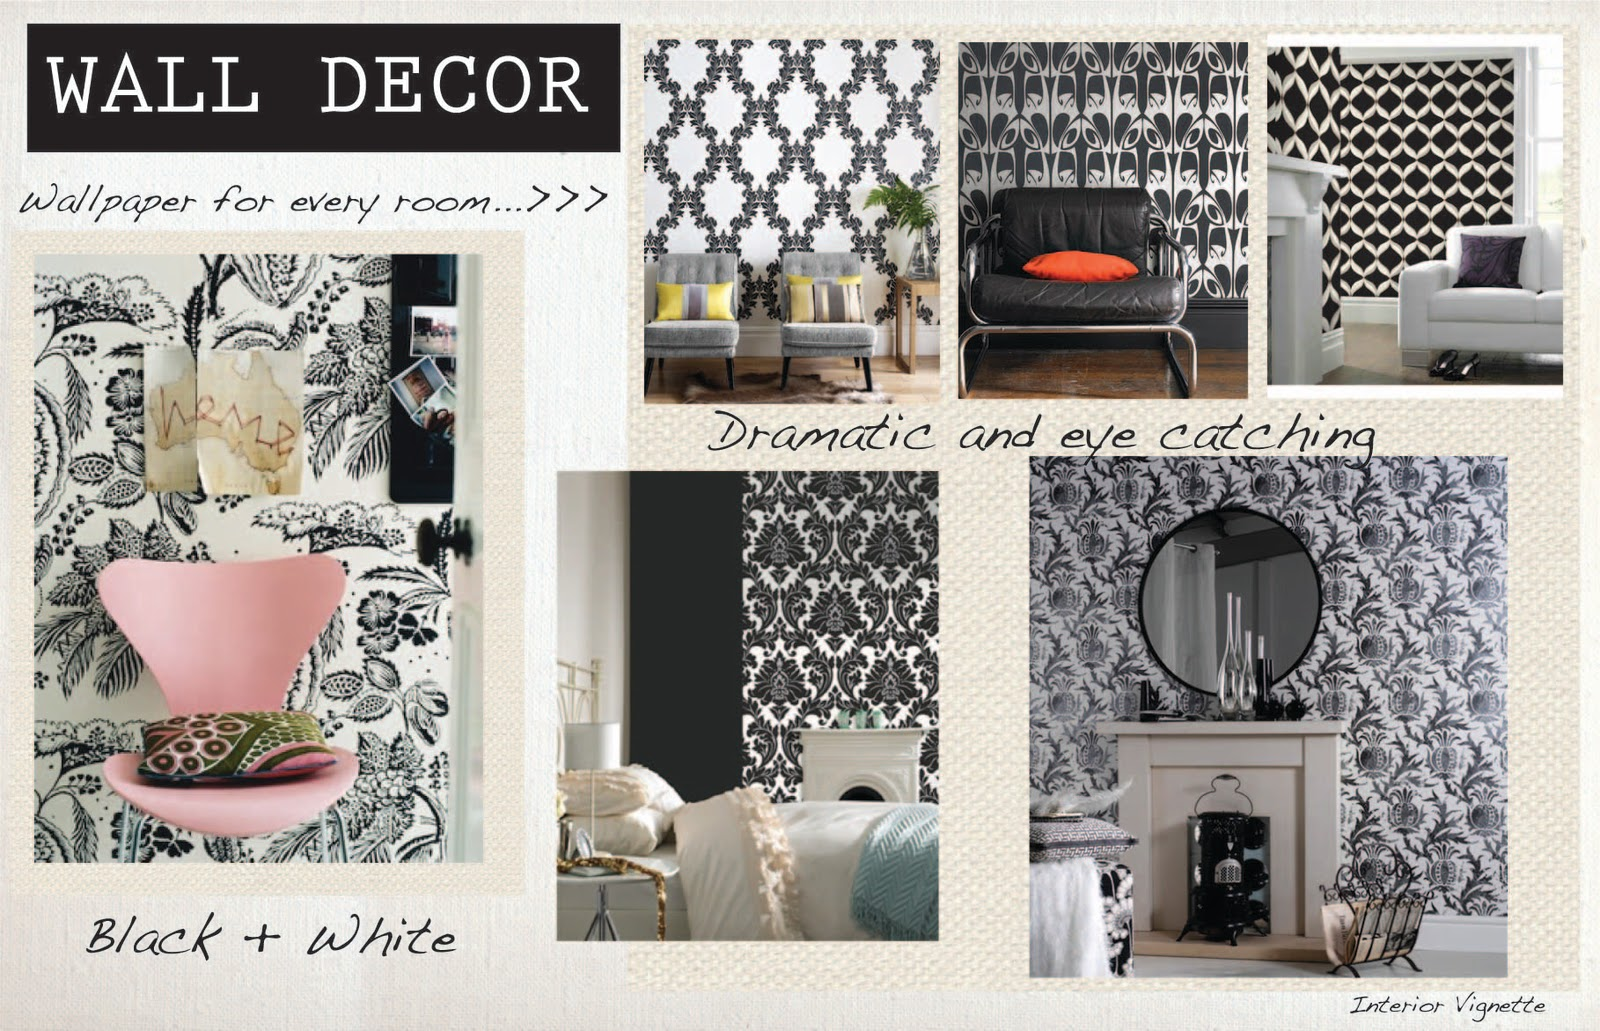 Wall Decor For White Walls : Black and white bathroom wall art grasscloth wallpaper